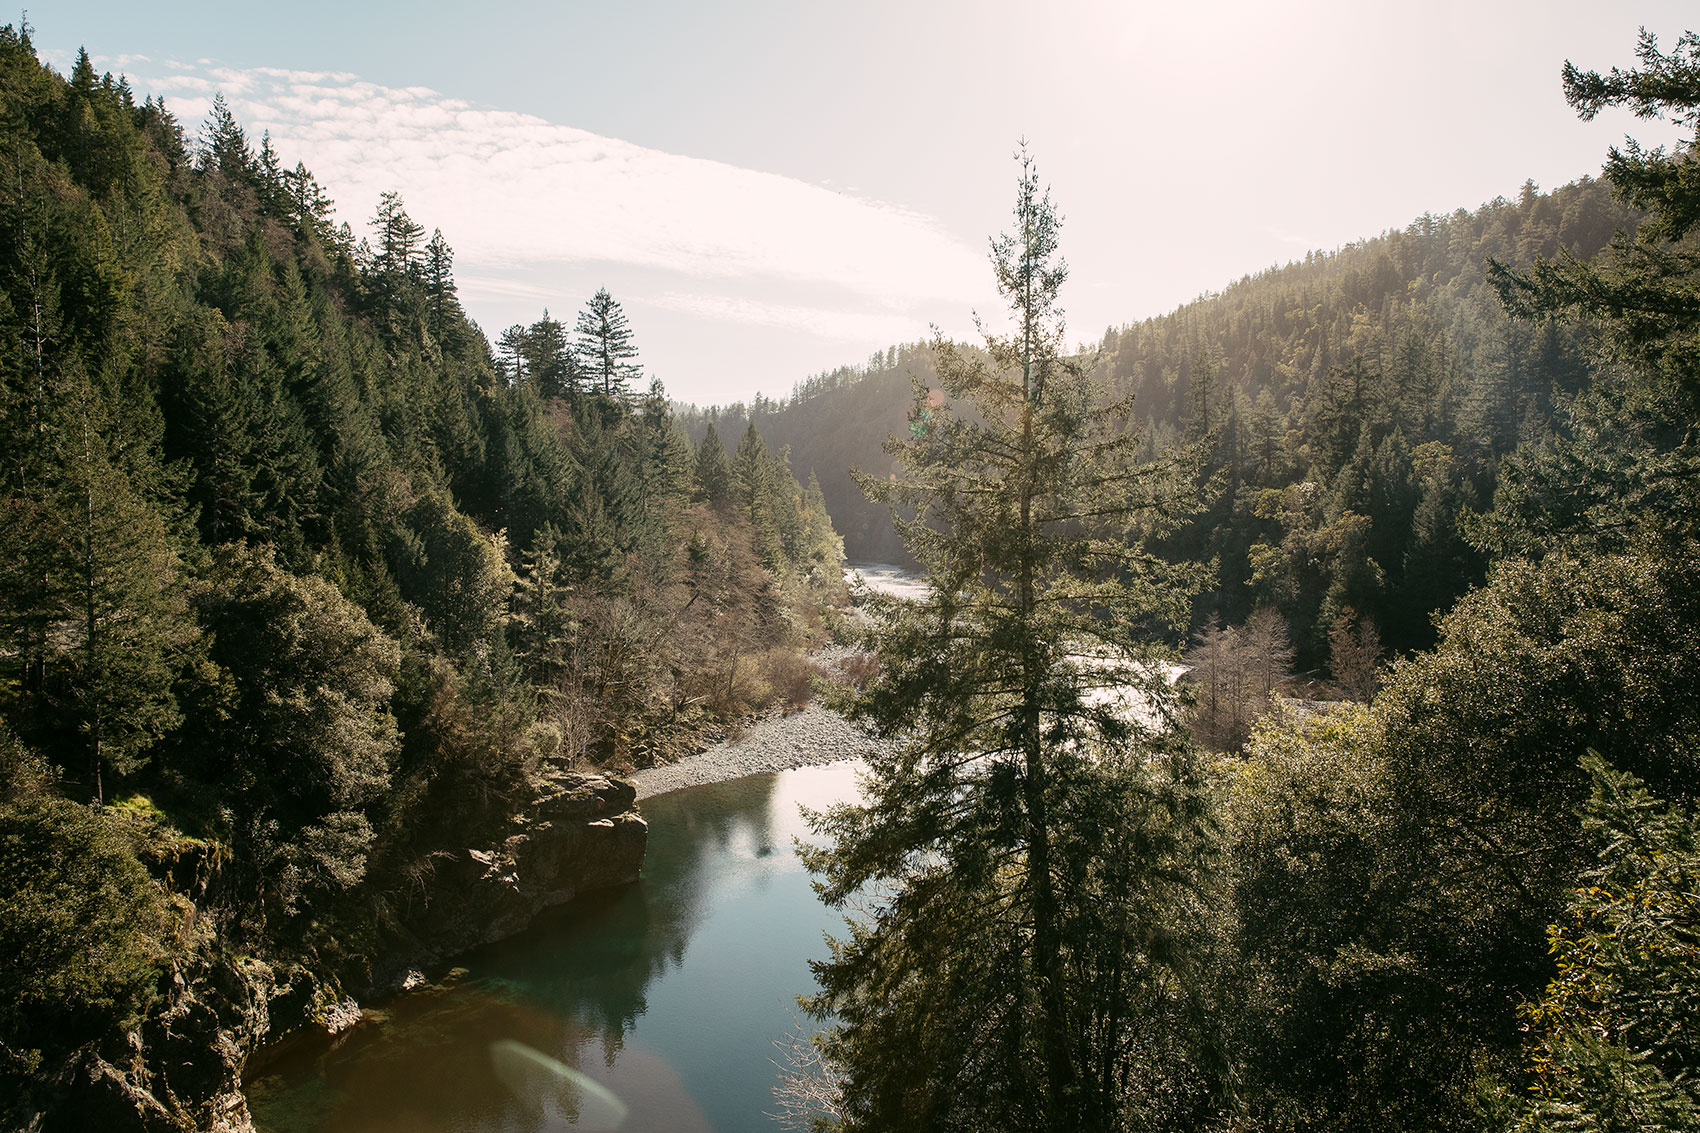 The Smith River winding through Jedediah Smith Redwoods State Park in Northern California